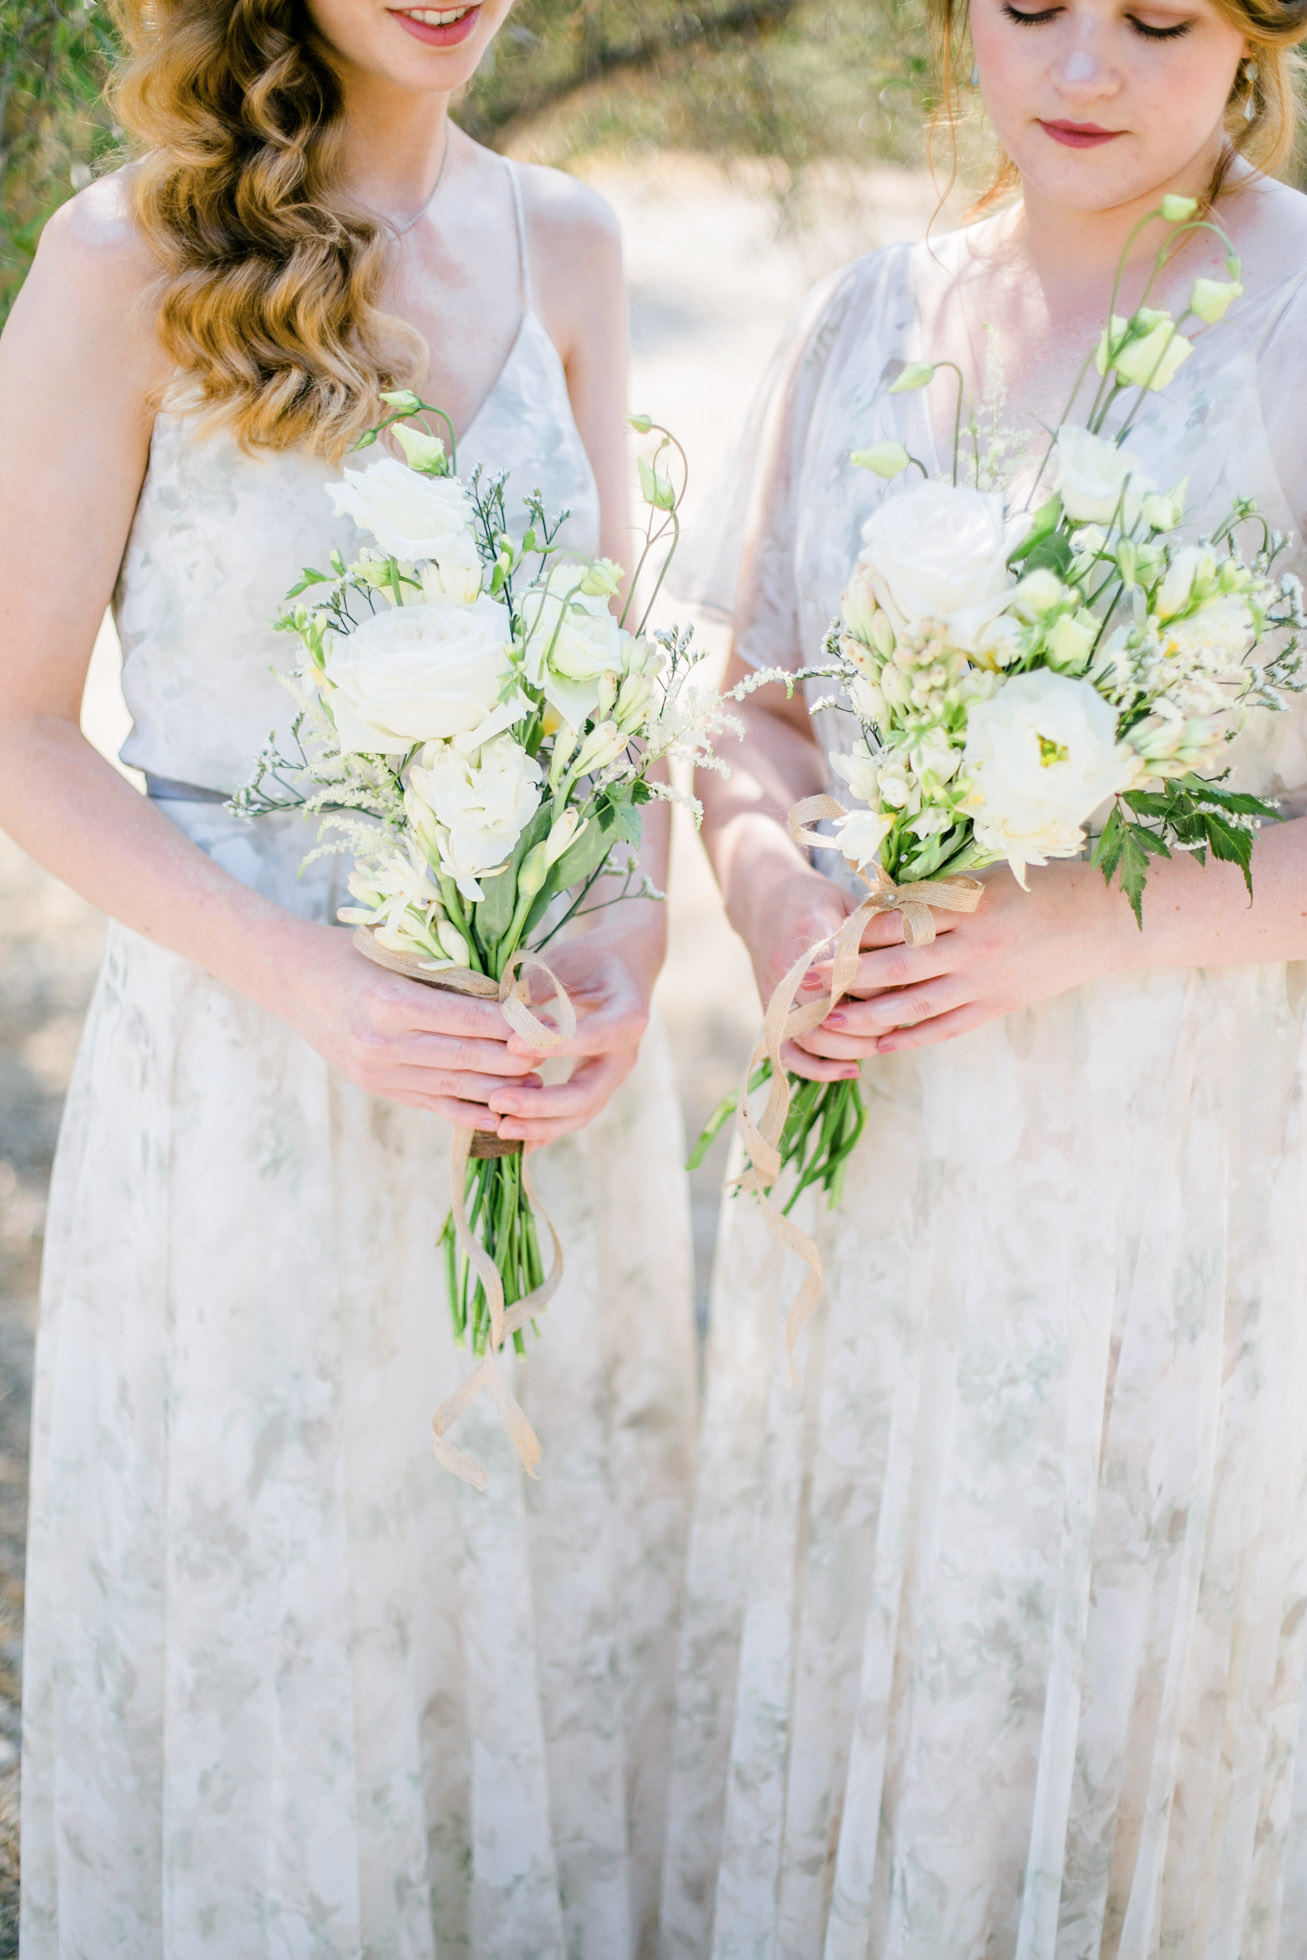 Bridesmaids holding flower bouquets on a wedding day.